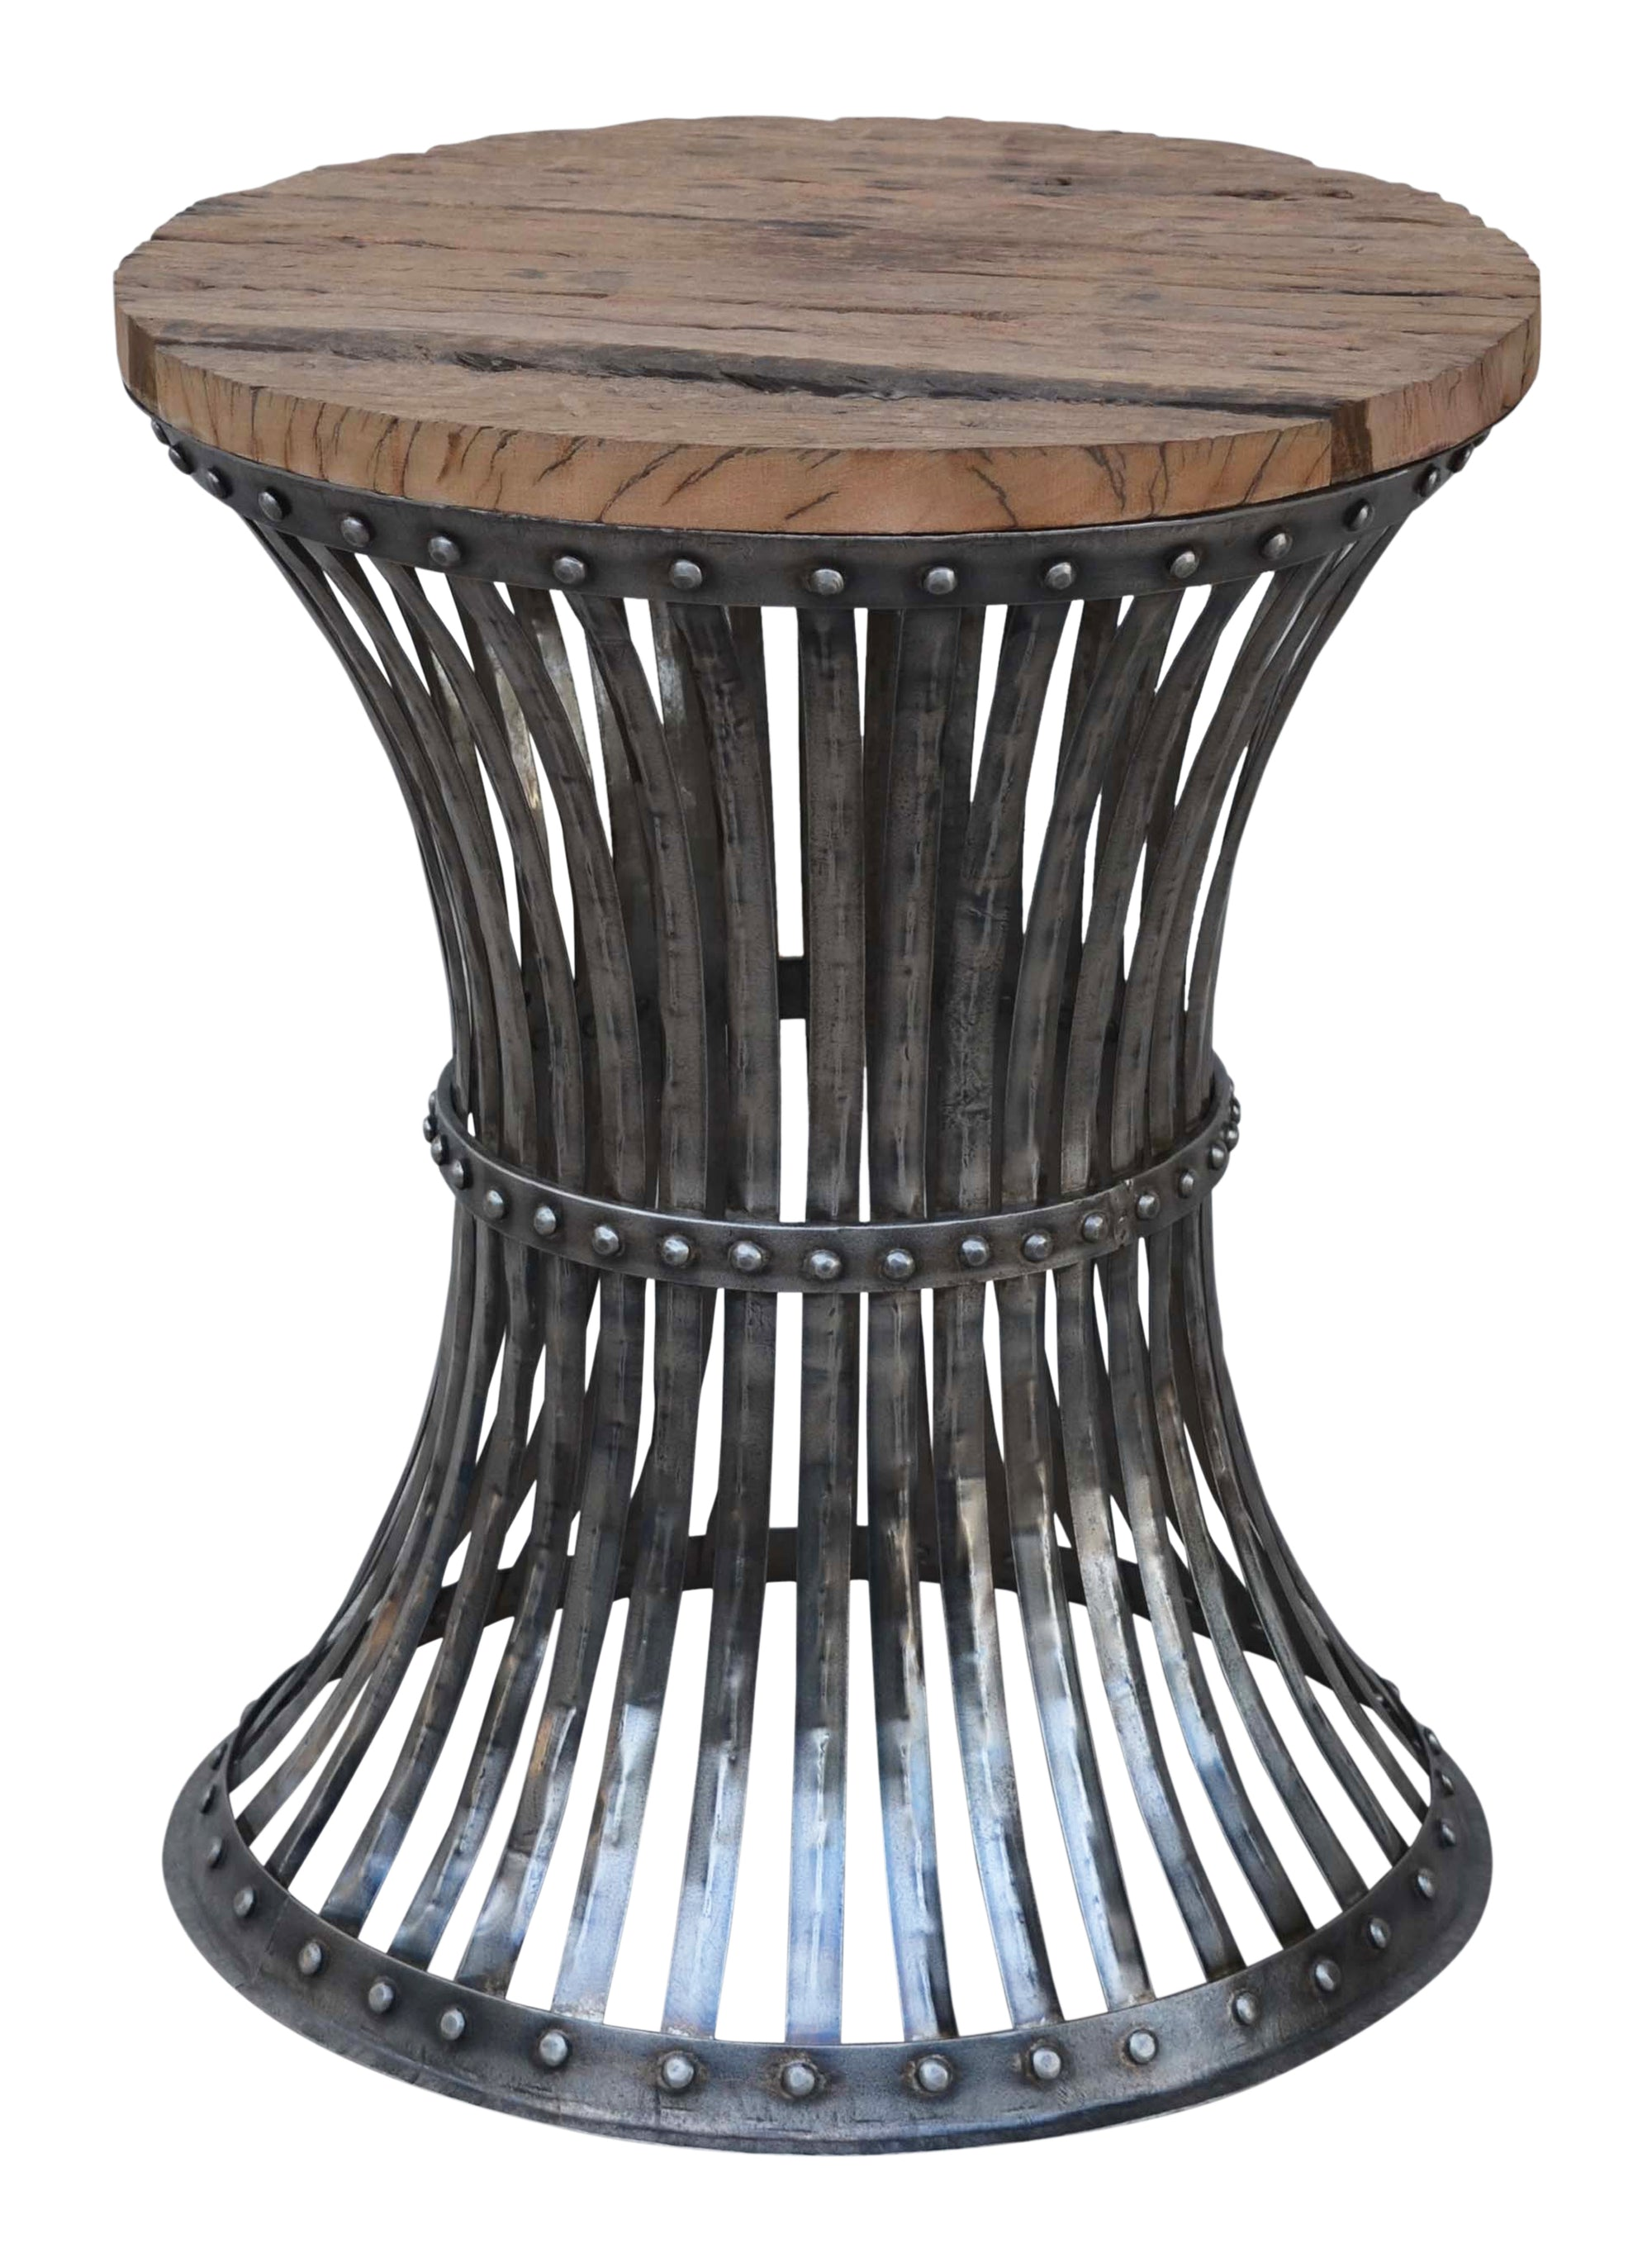 Hourglass Wood And Iron Side Table - decorstore